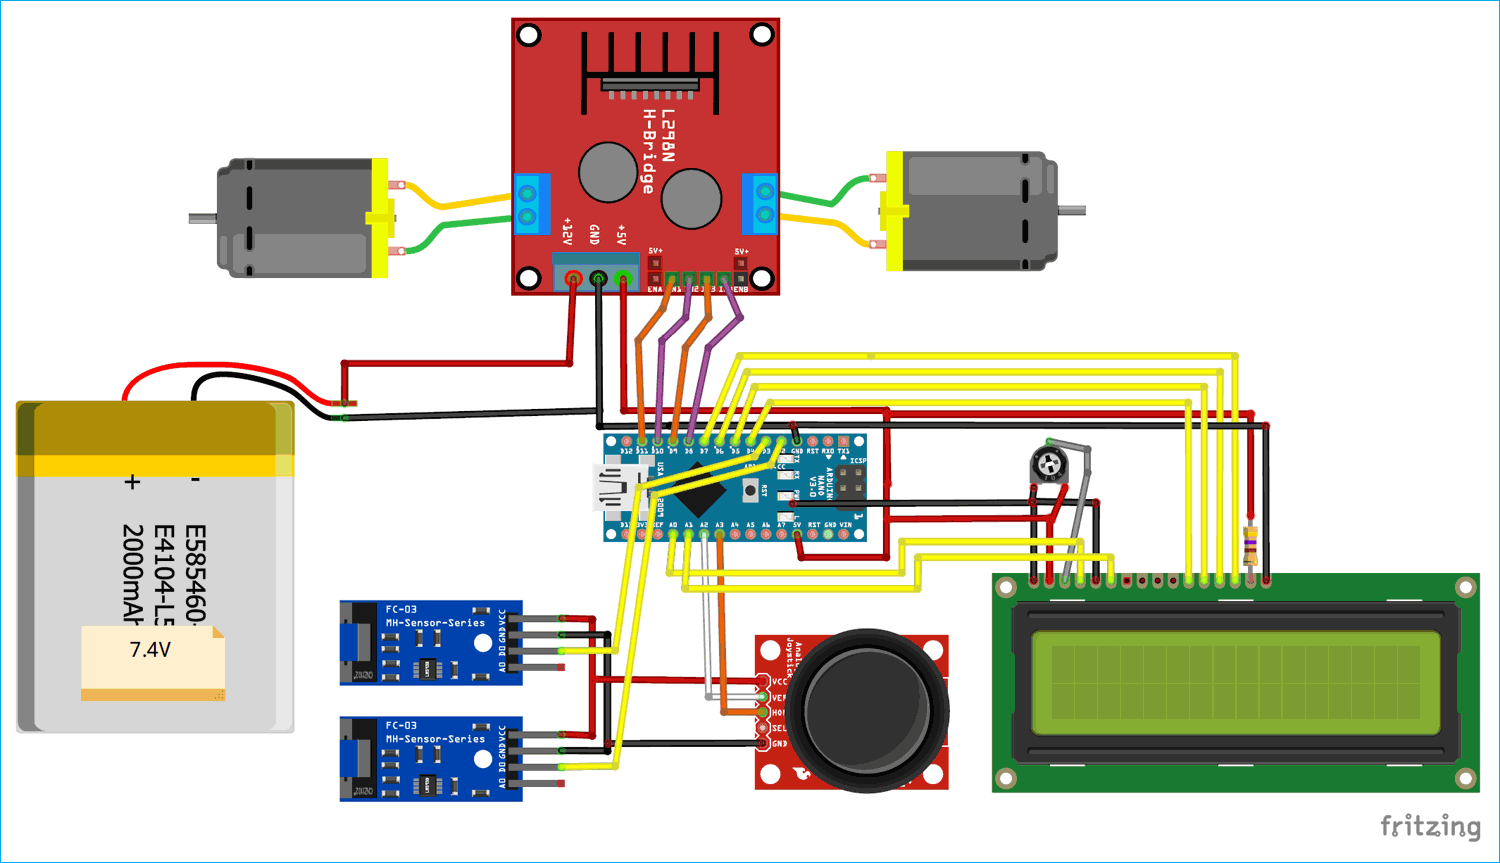 Circuit Diagram for Speed, Distance Measurement for Mobile Robots using Arduino and LM393 Sensor (H206)